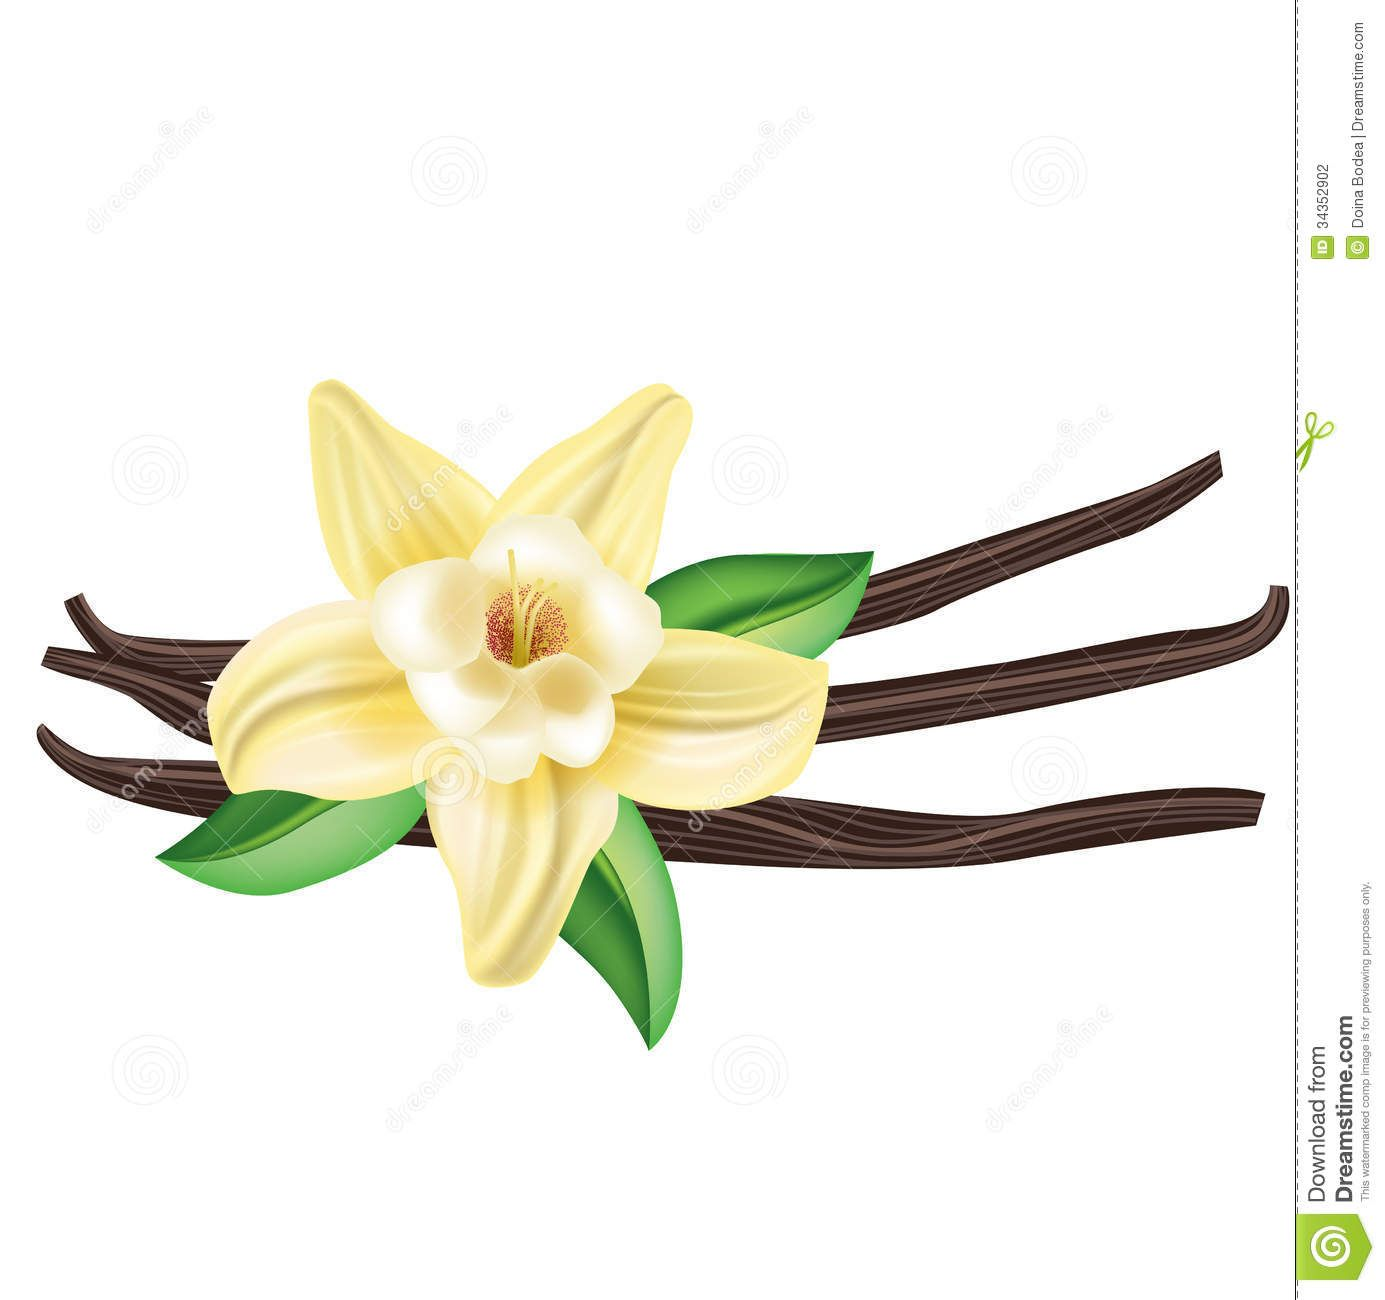 Vanilla bean clipart clipart library Vanilla Clipart Vanilla Flower Drawing Vanilla Bean Flower ... clipart library